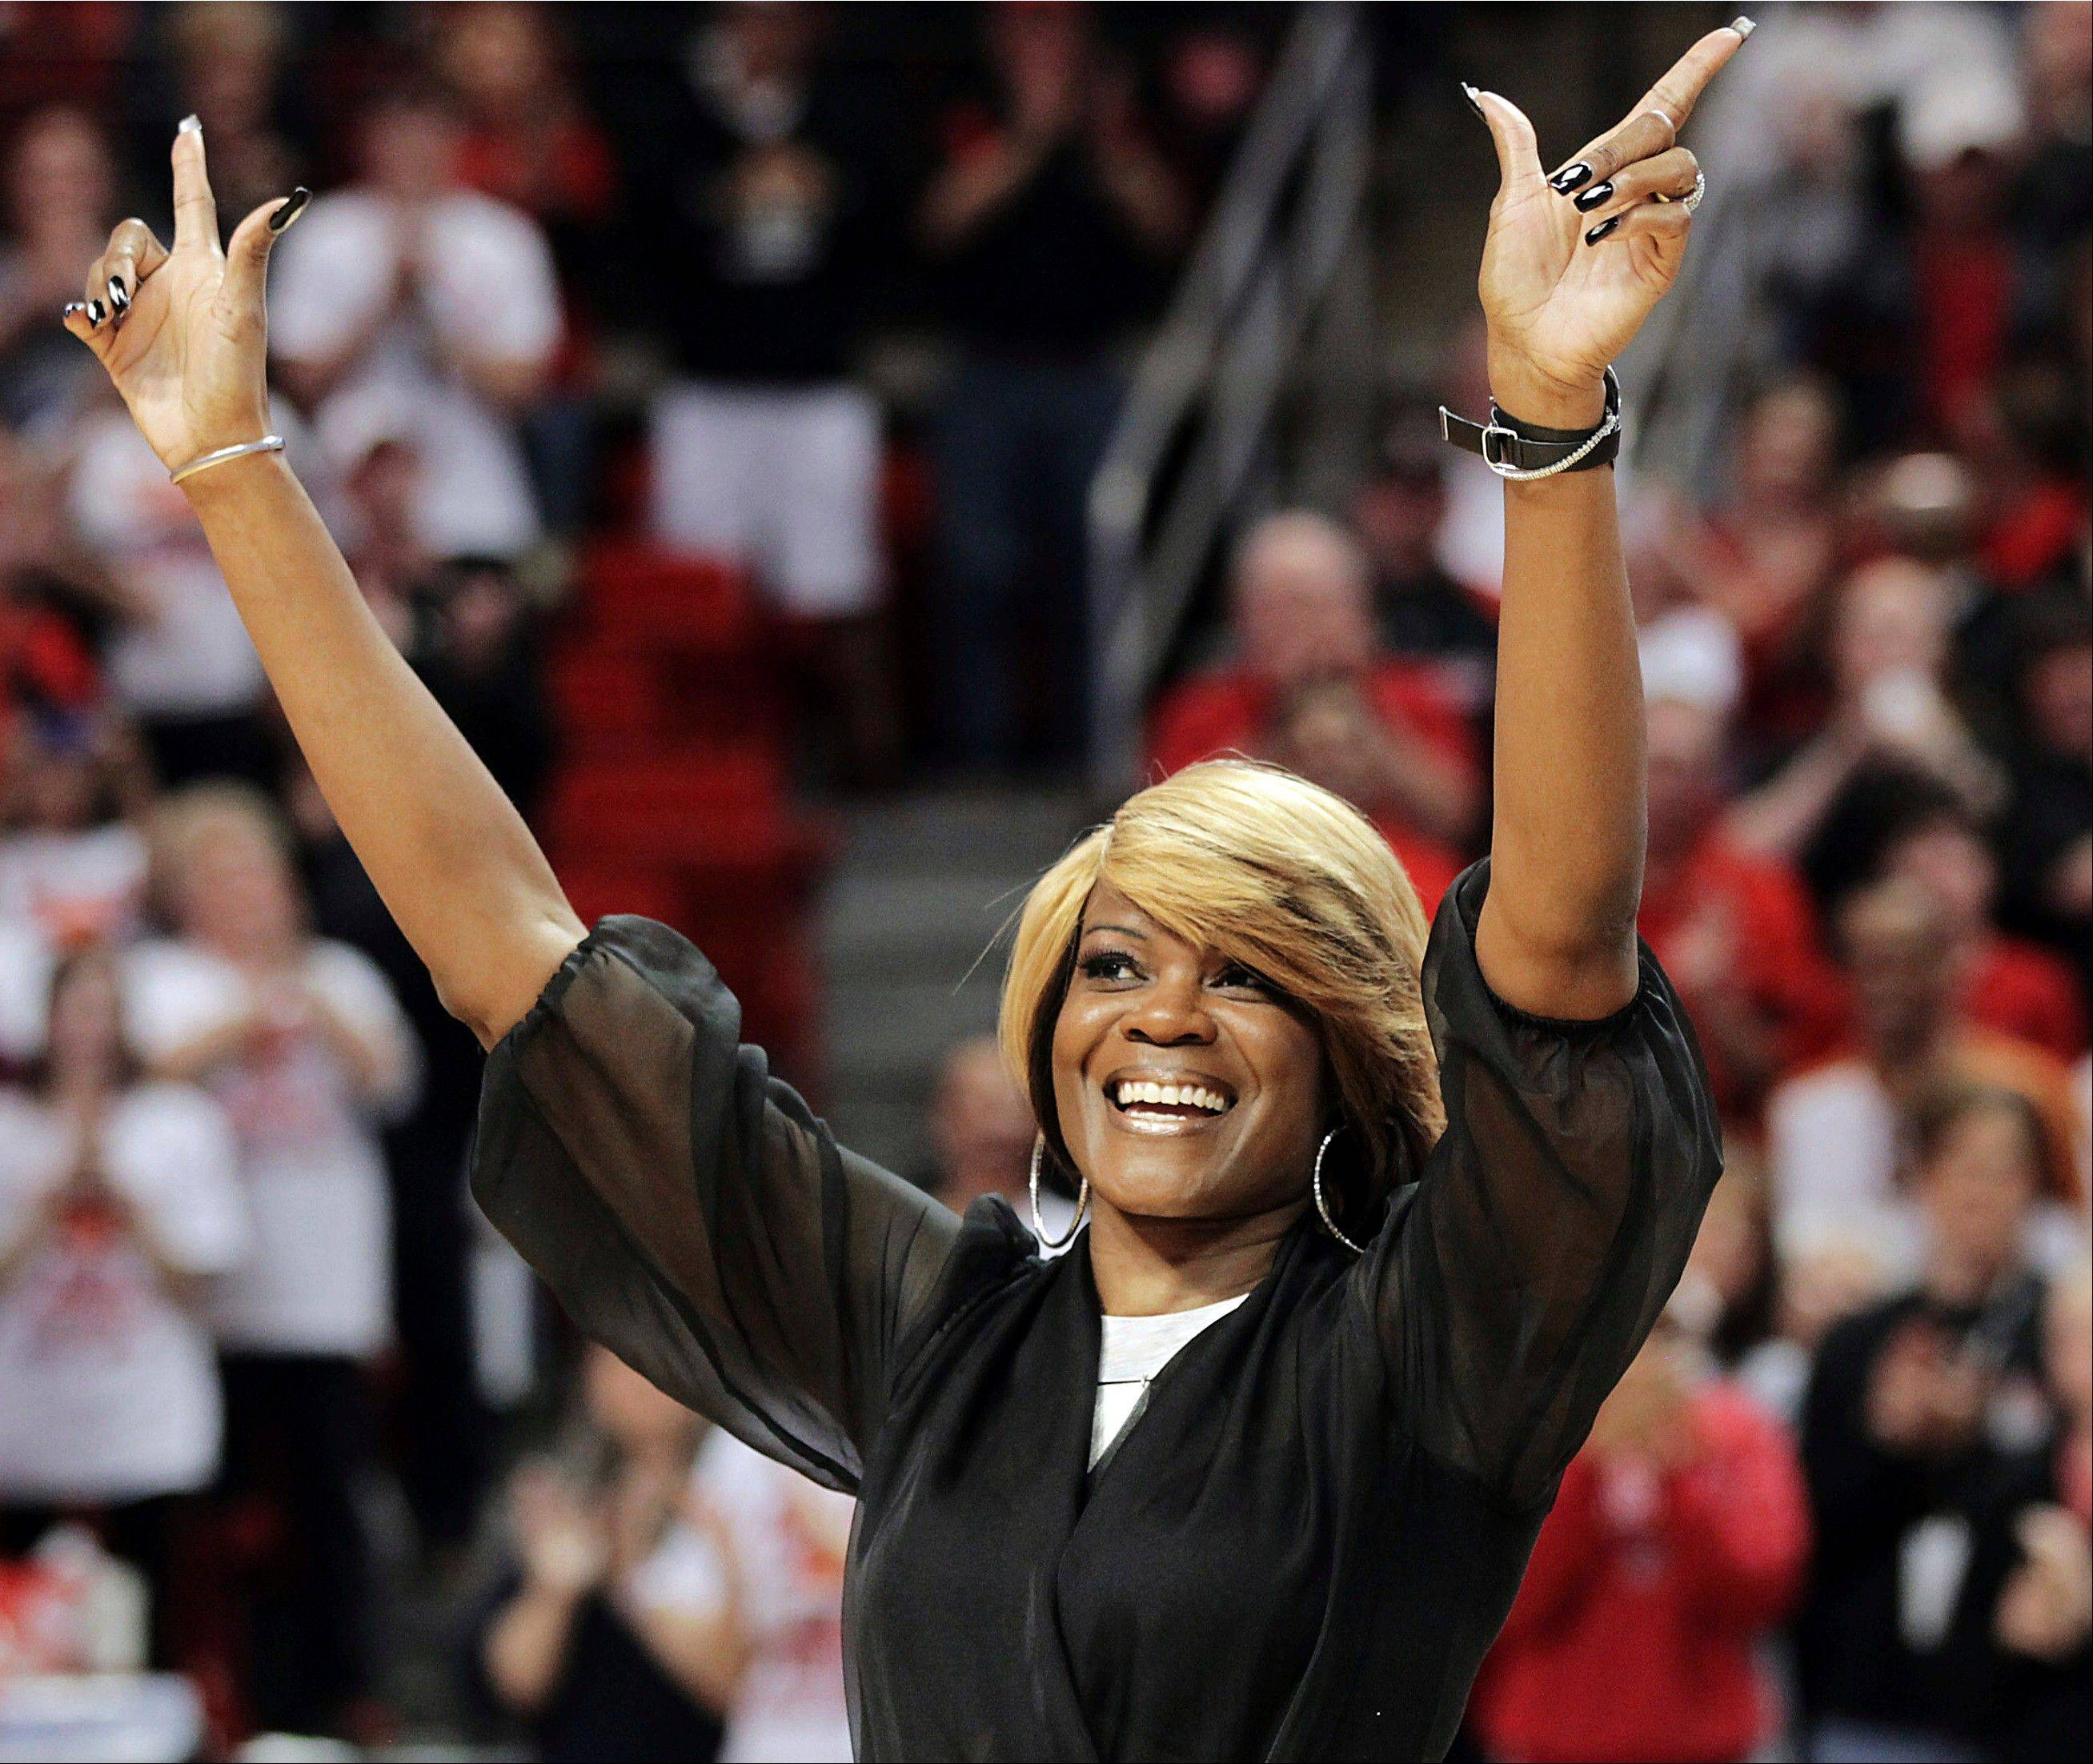 New Loyola women�s basketball coach Sheryl Swoopes plans to use her fame to best advantage in recruiting and promoting the Ramblers� program.